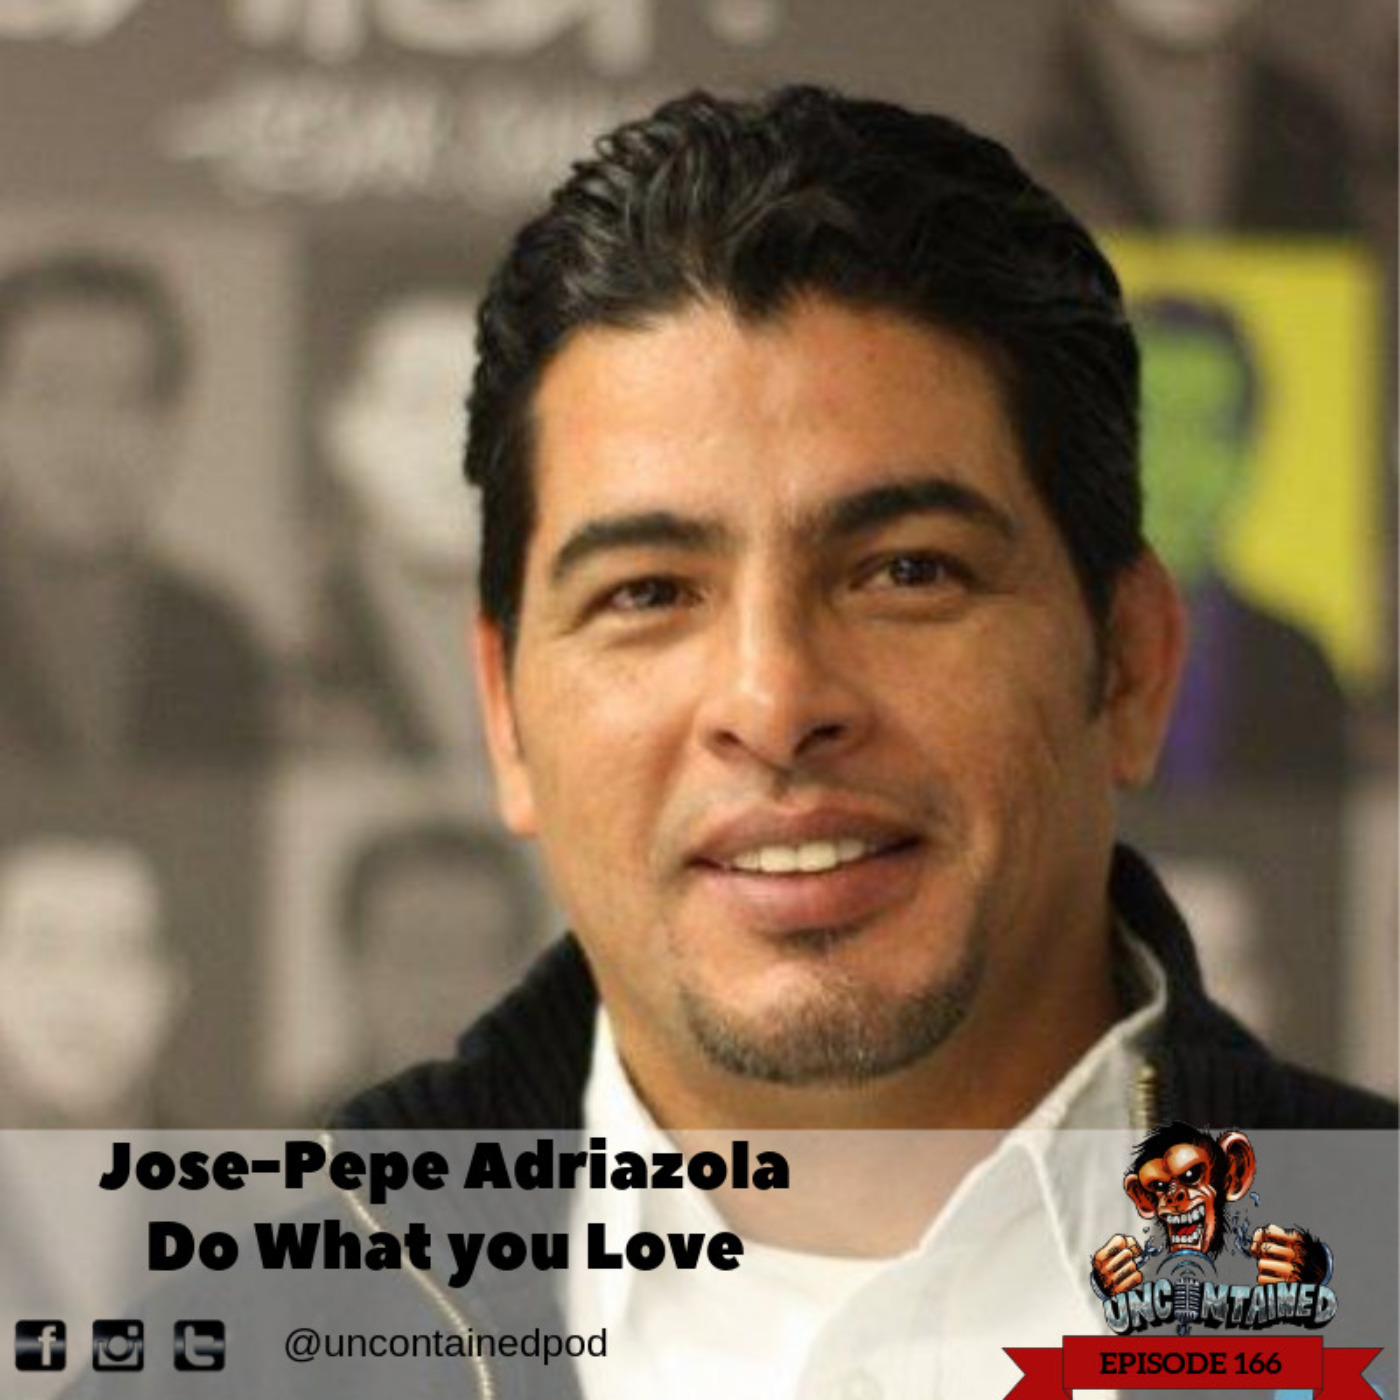 Episode 166: Jose-Pepe Adriazola - Do What You Love